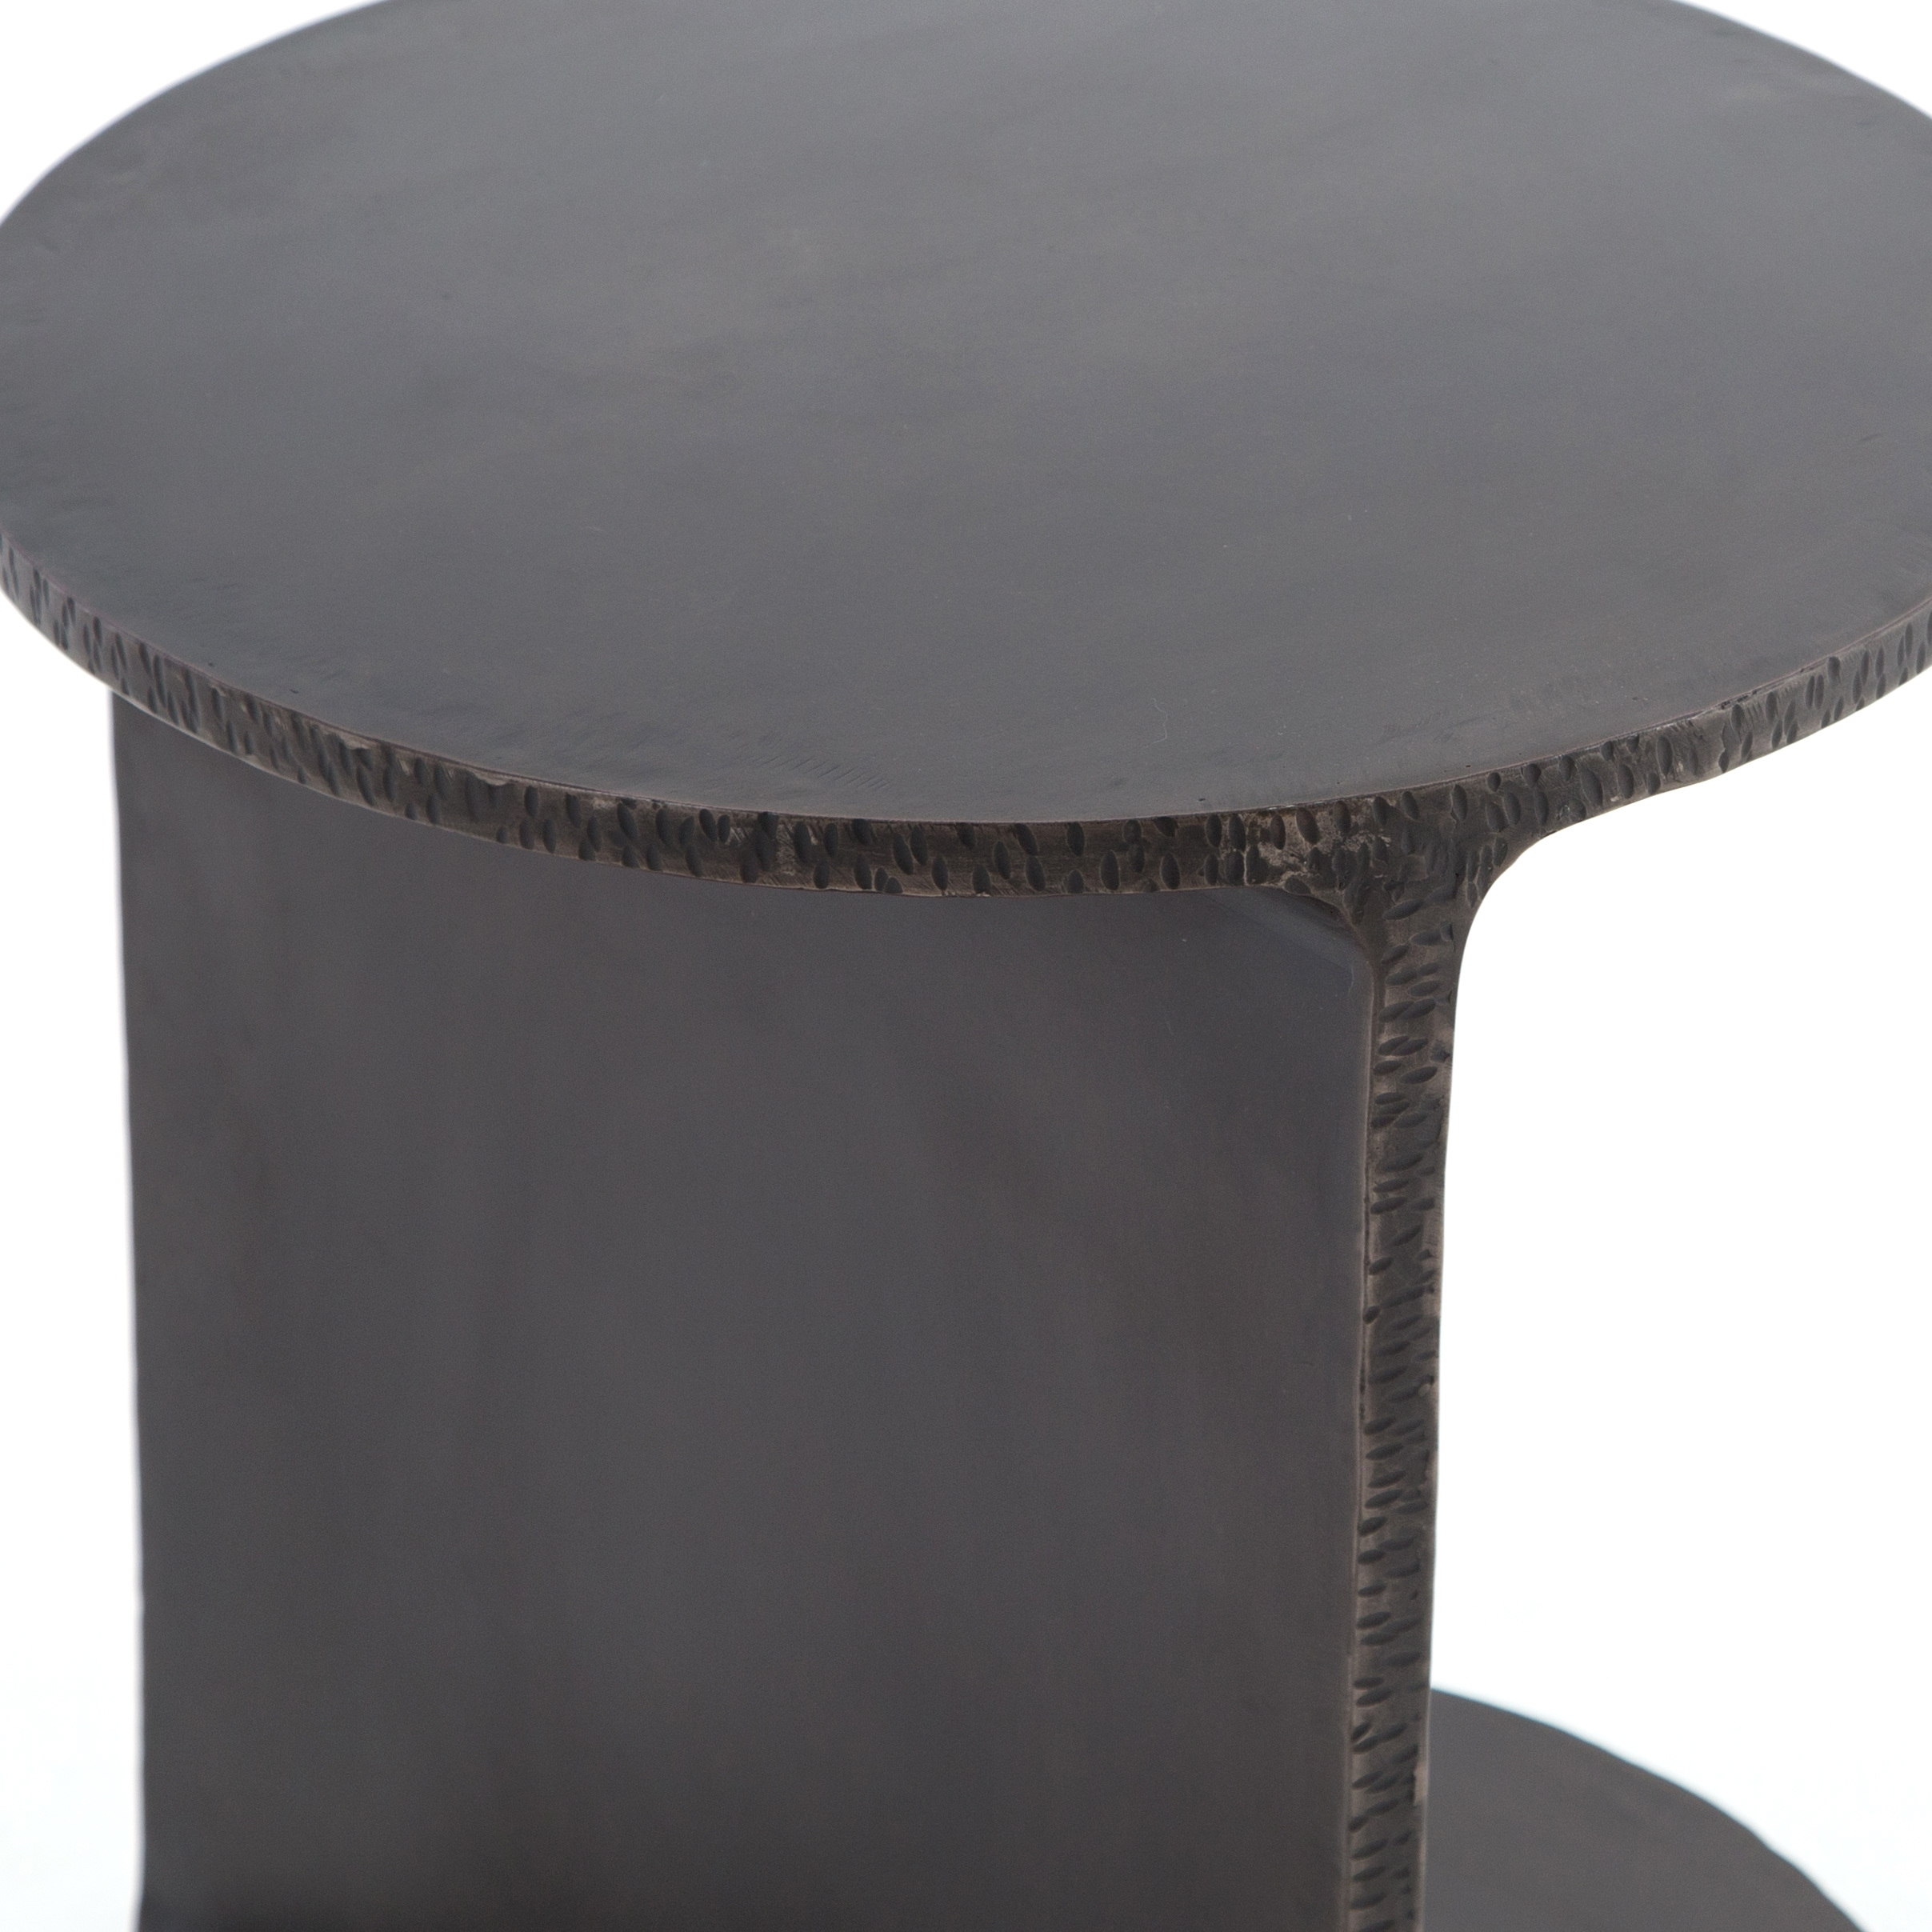 Illy Side Table, Black